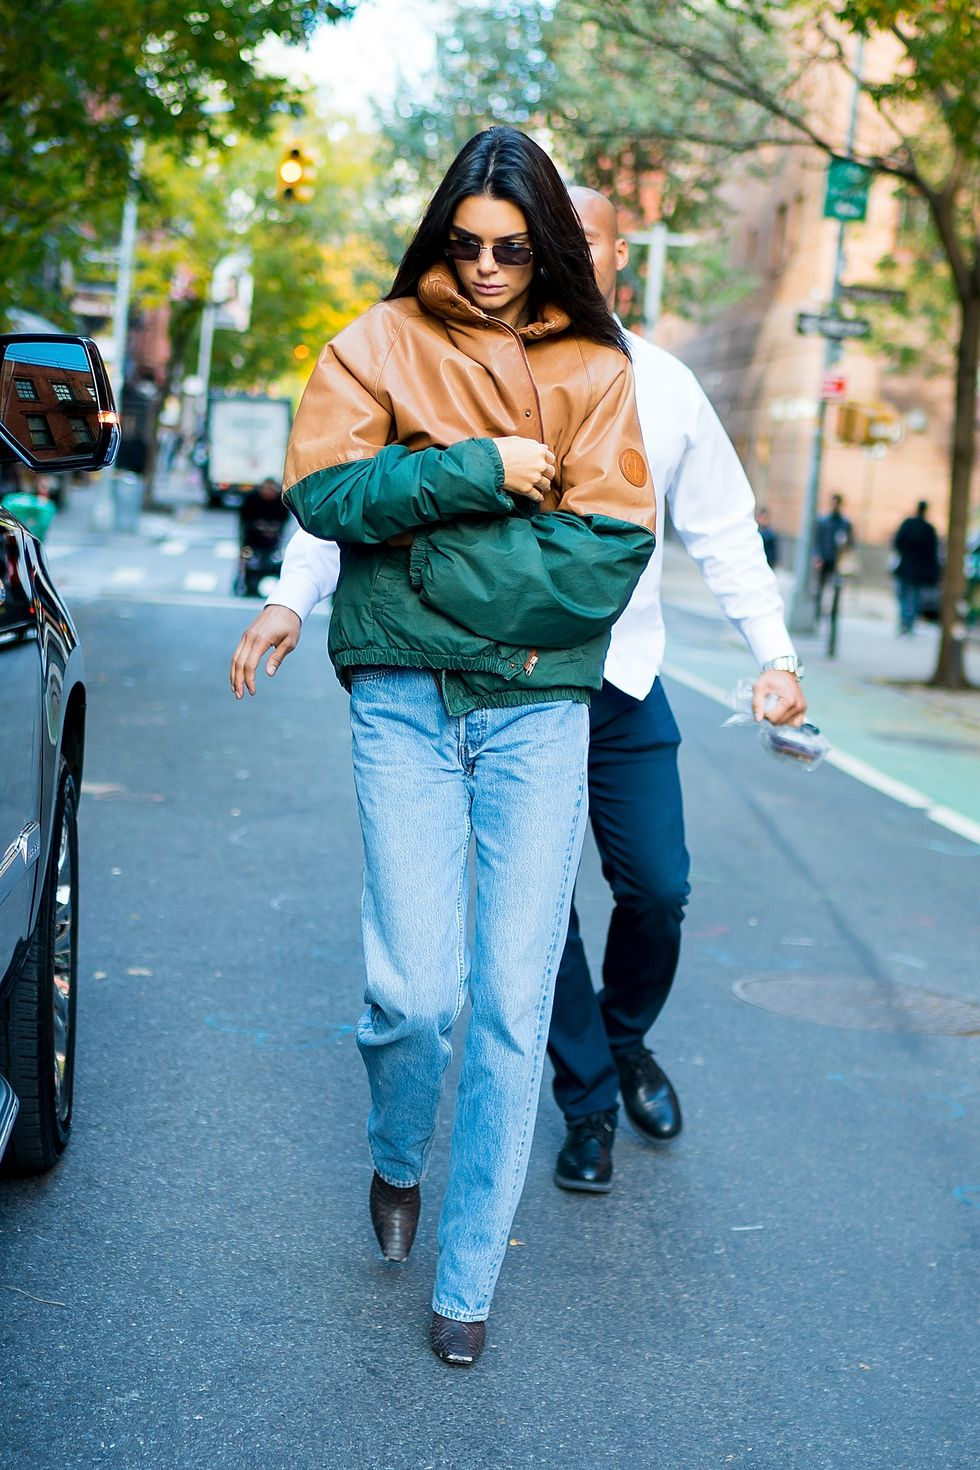 November 8, 2018 Kendall bundled up in a toffee-brown and green jacket for fall in NYC. The star's outerwear collection is one of the best in Hollywood, as you'll see in the next photo.